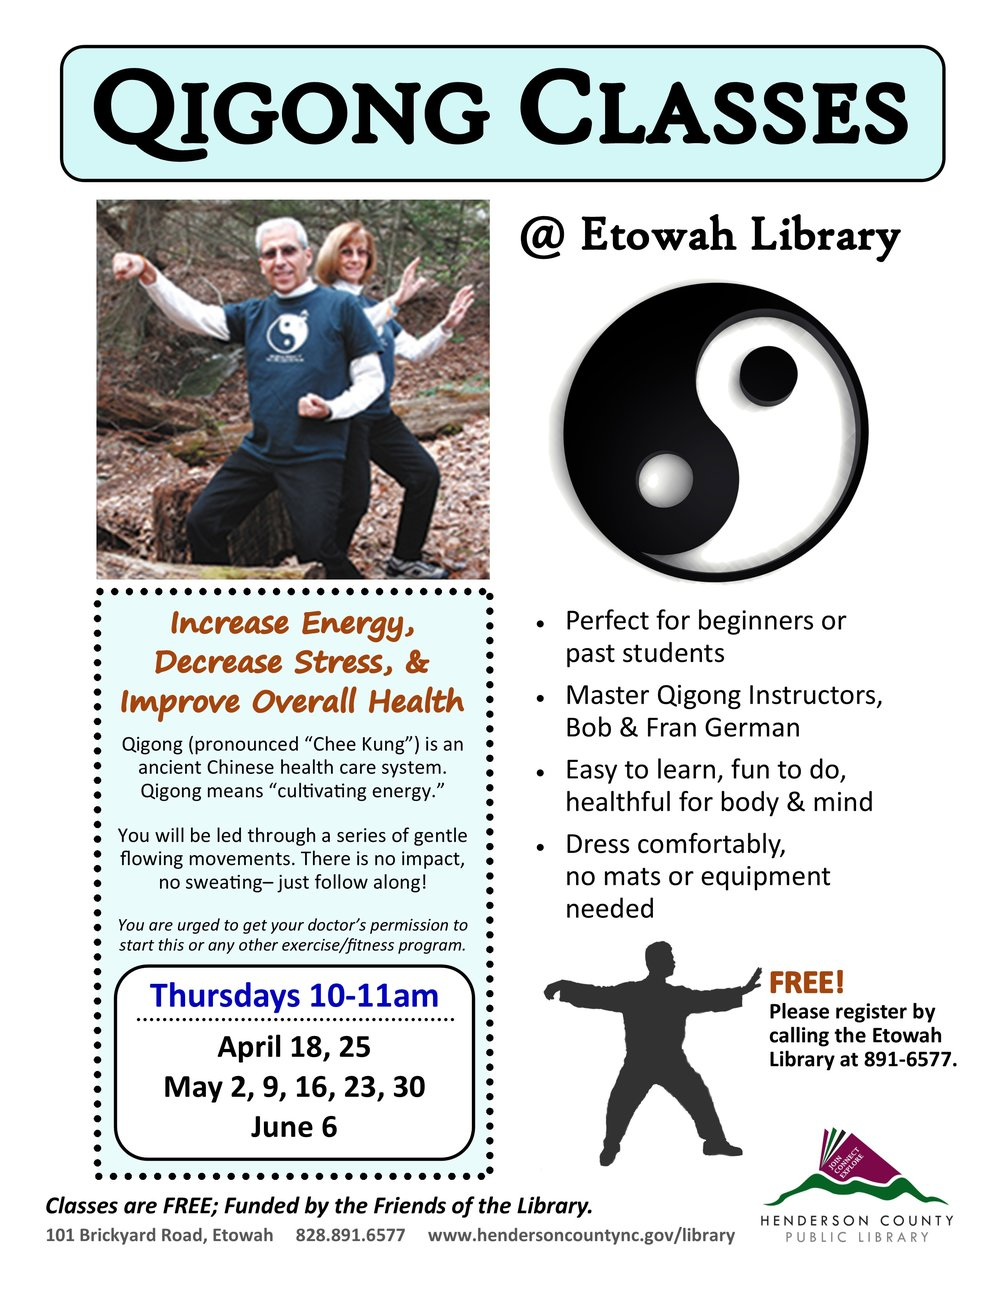 ET- Qigong Classes with Bob and Fran German (2).jpg